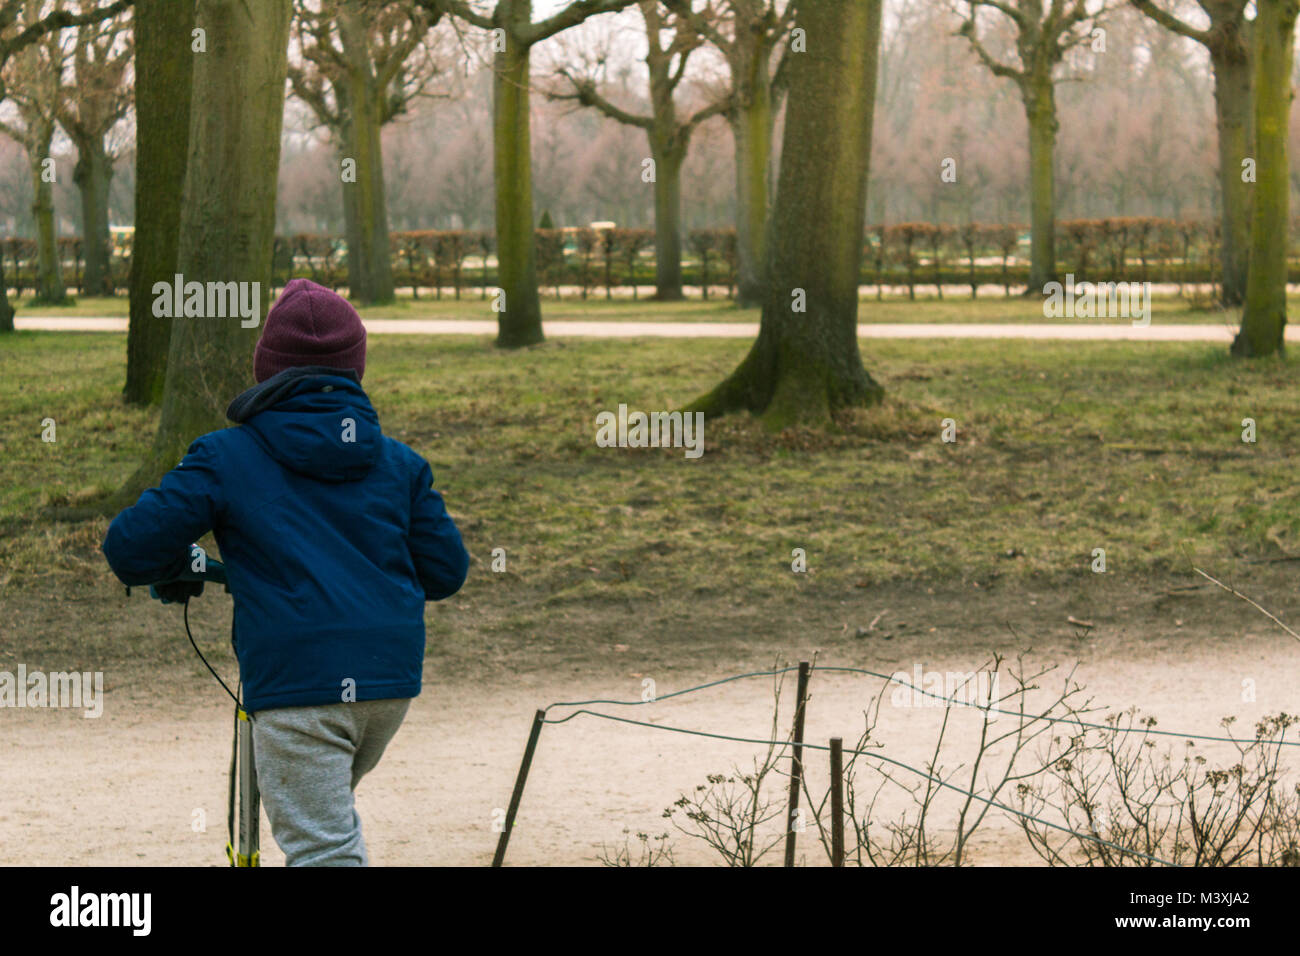 Boy riding a scooter in a cold winter day in a park. Unfocused trees on the background with the image of the boy - Stock Image